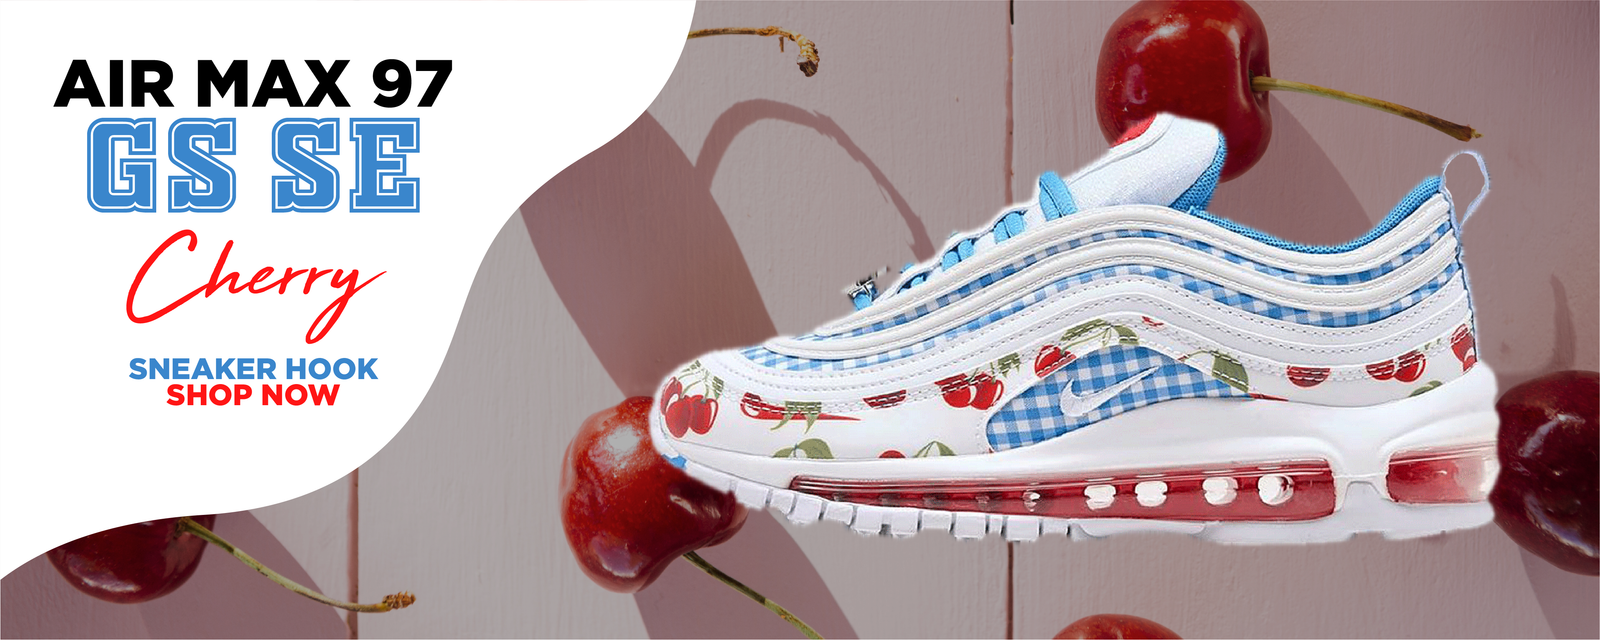 Air Max 97 GS SE Cherry Clothing to match Sneakers | Clothing to match Nike Air Max 97 GS SE Cherry Shoes